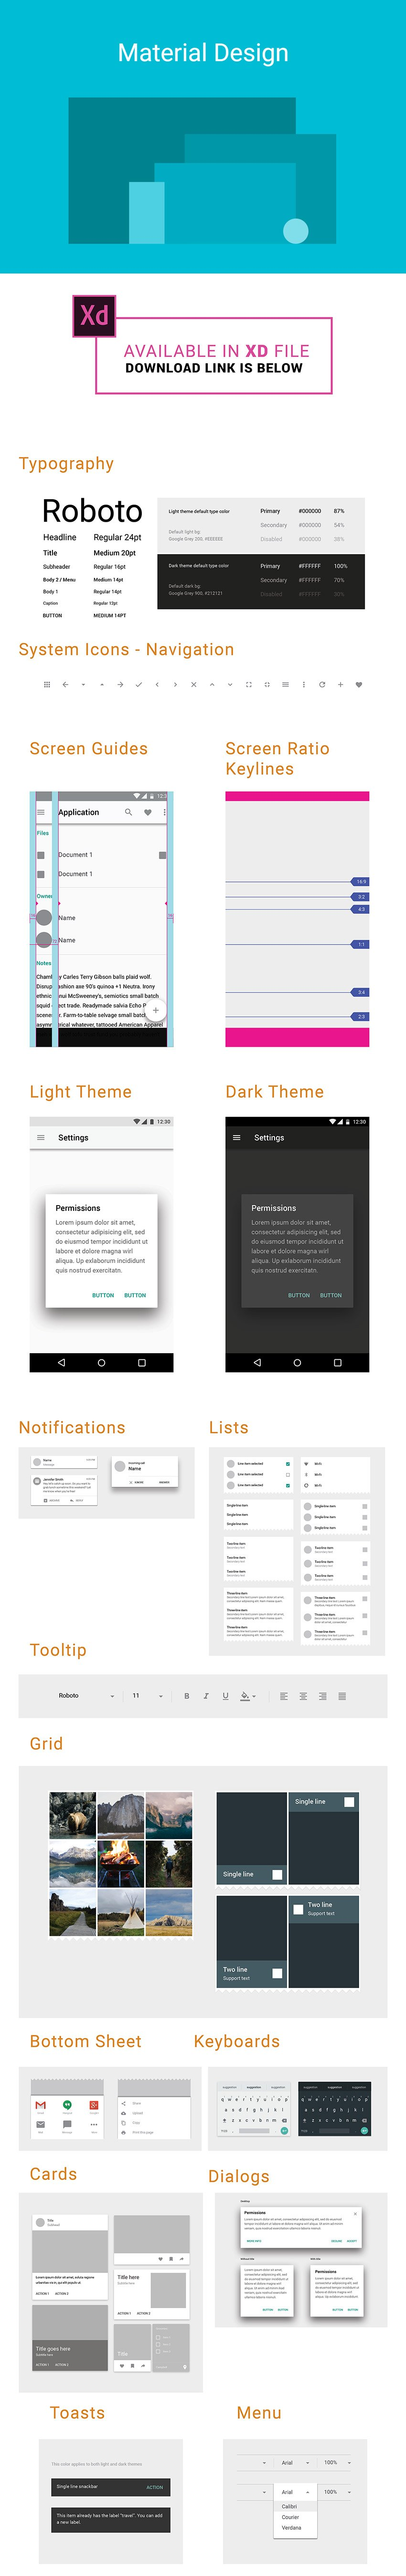 Basic Material Design Guidline for Adobe XD from Android